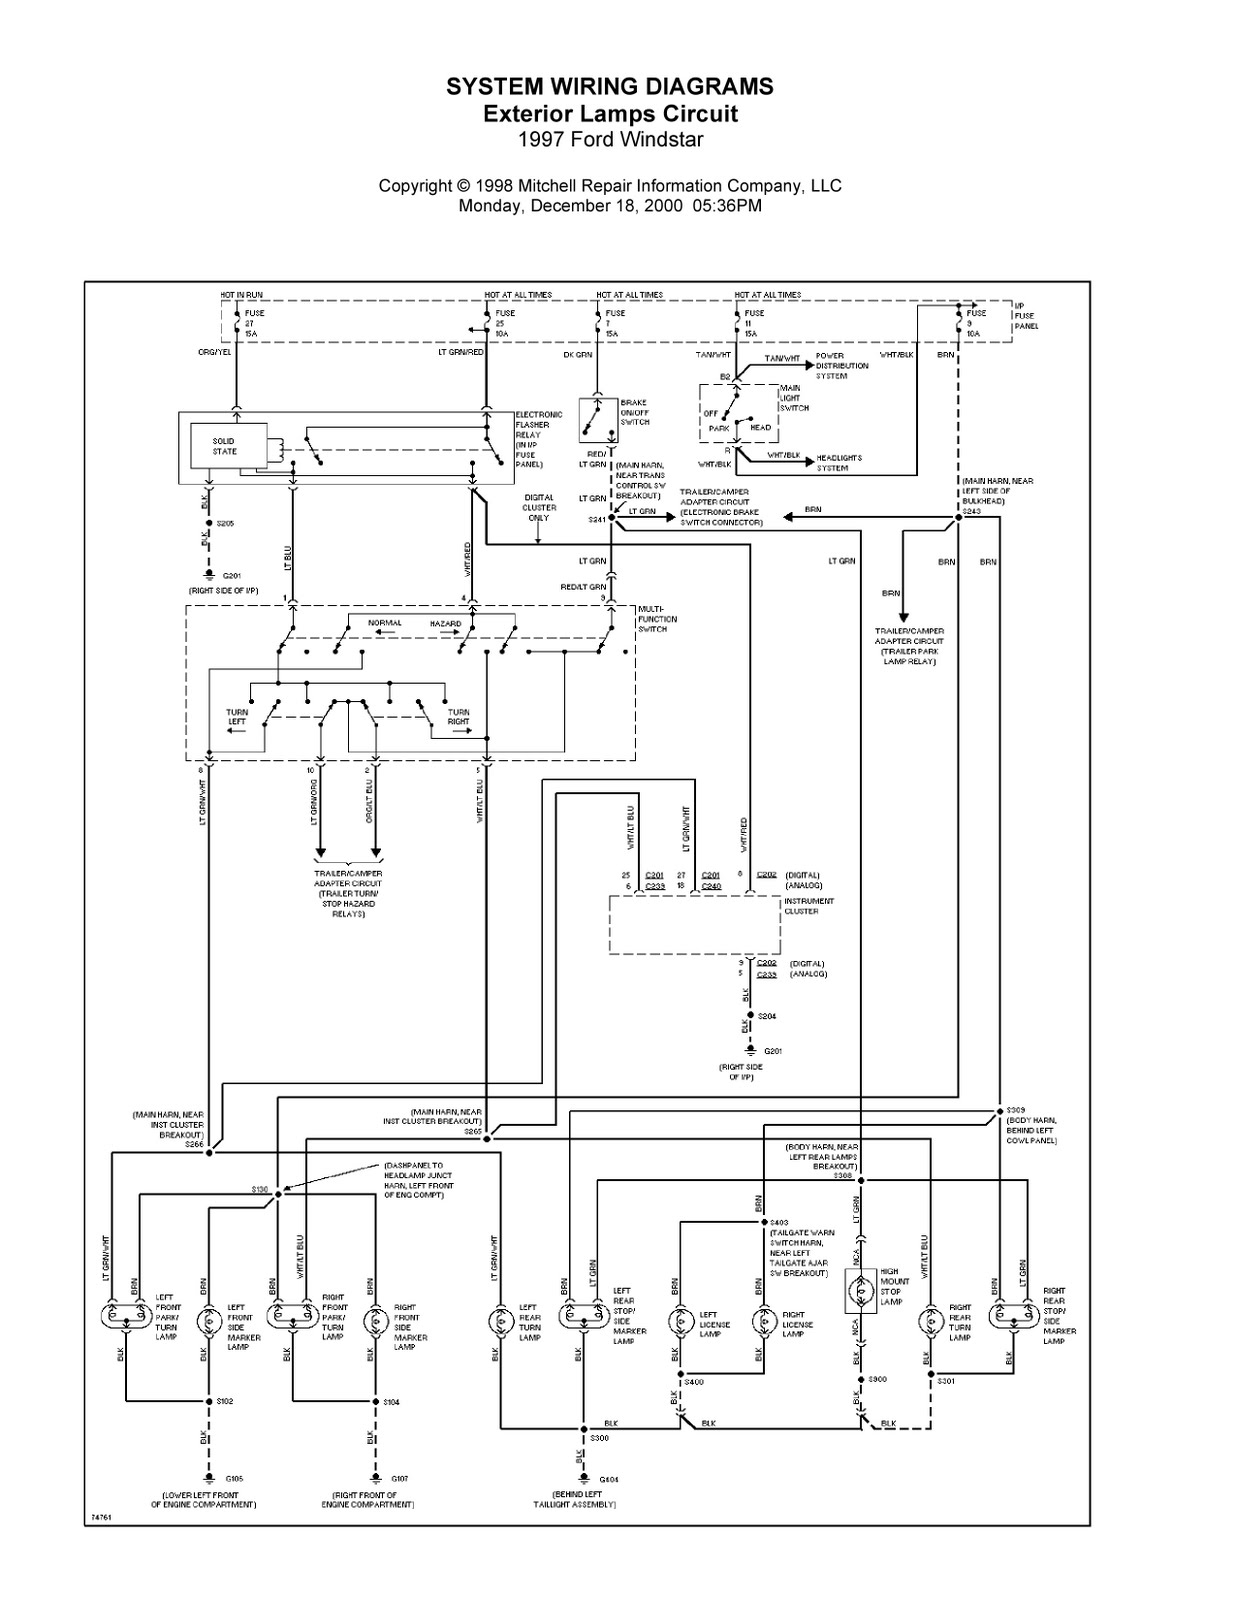 Ford Windstar Wiper Motor Wiring Diagram. Ford. Auto